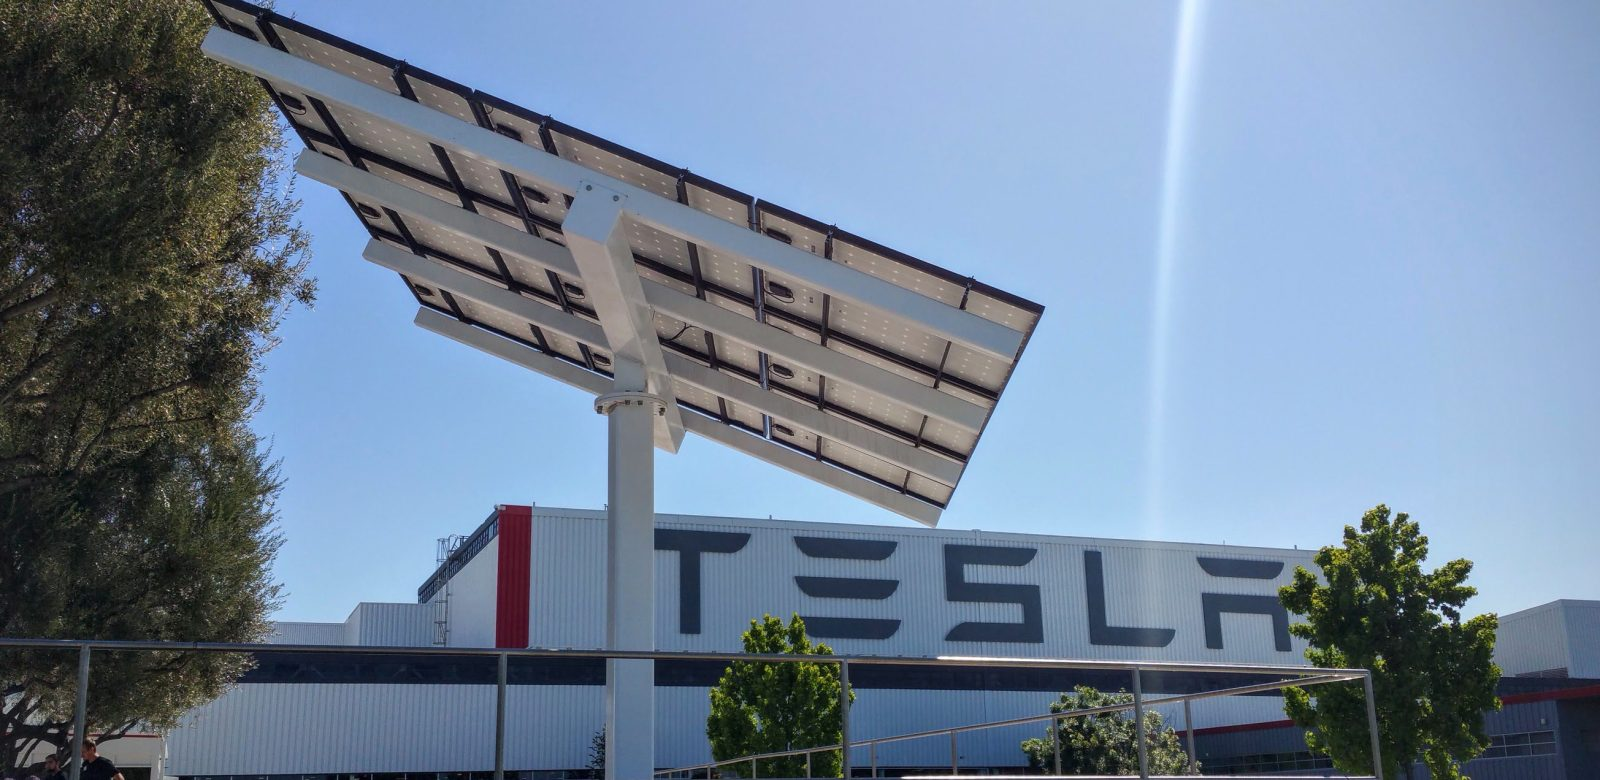 Tesla is negotiating with Indian government to start importing vehicles and build a factory